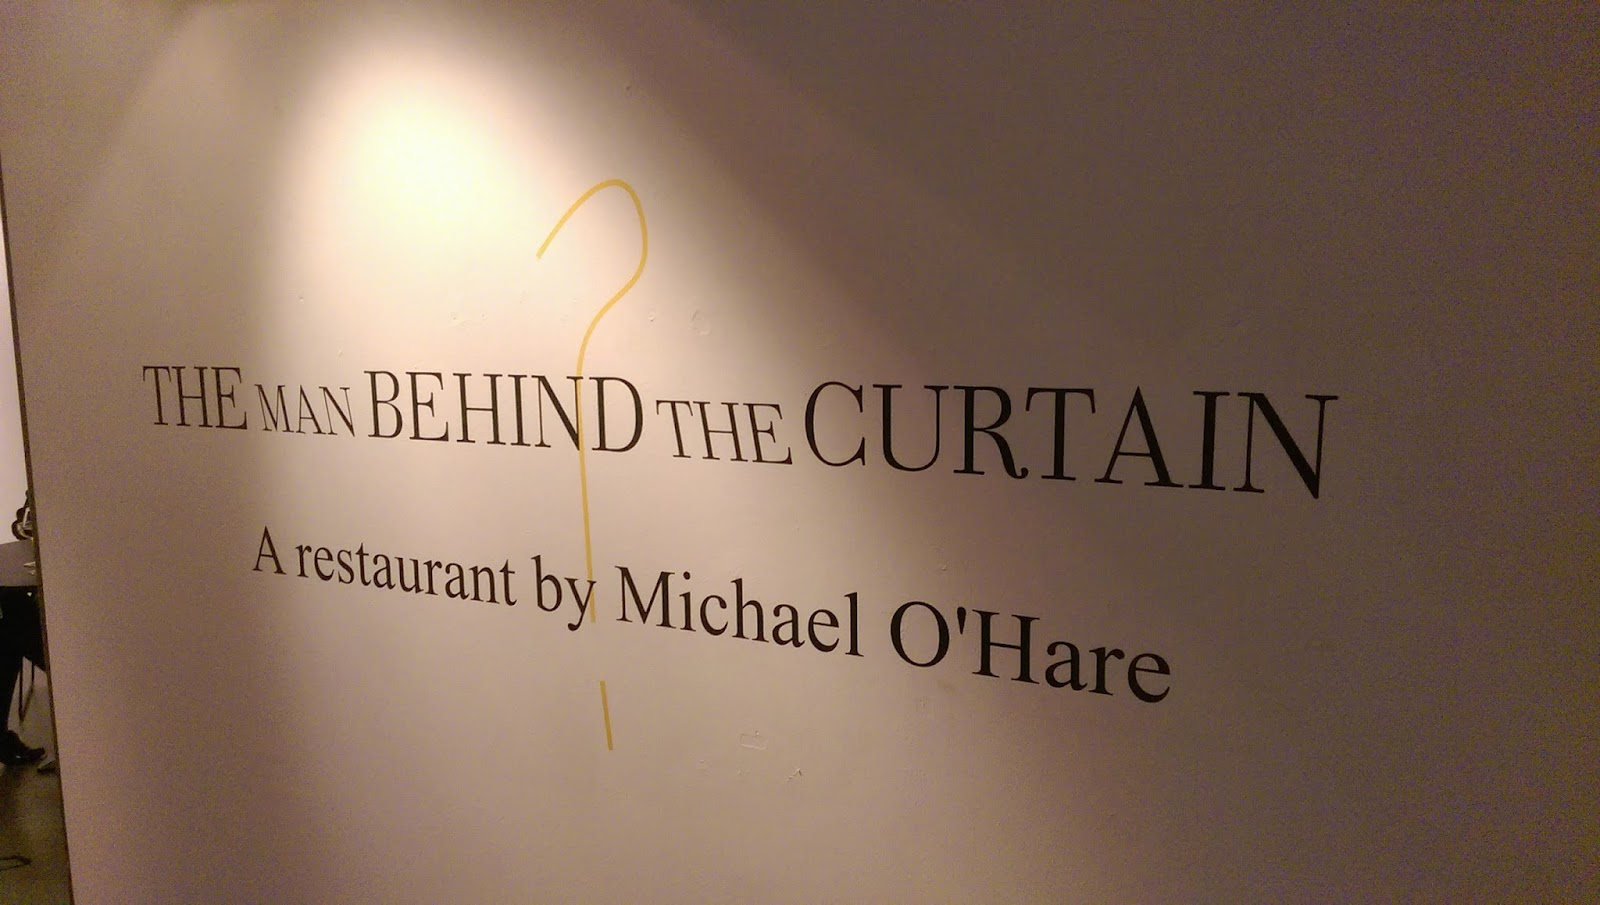 Curtain behind the curtain book - Michael Is Clearly Somewhat Outspoken About What He Expects From This Restaurant Just Take A Look At The Thoughts Section On The Restaurant Website